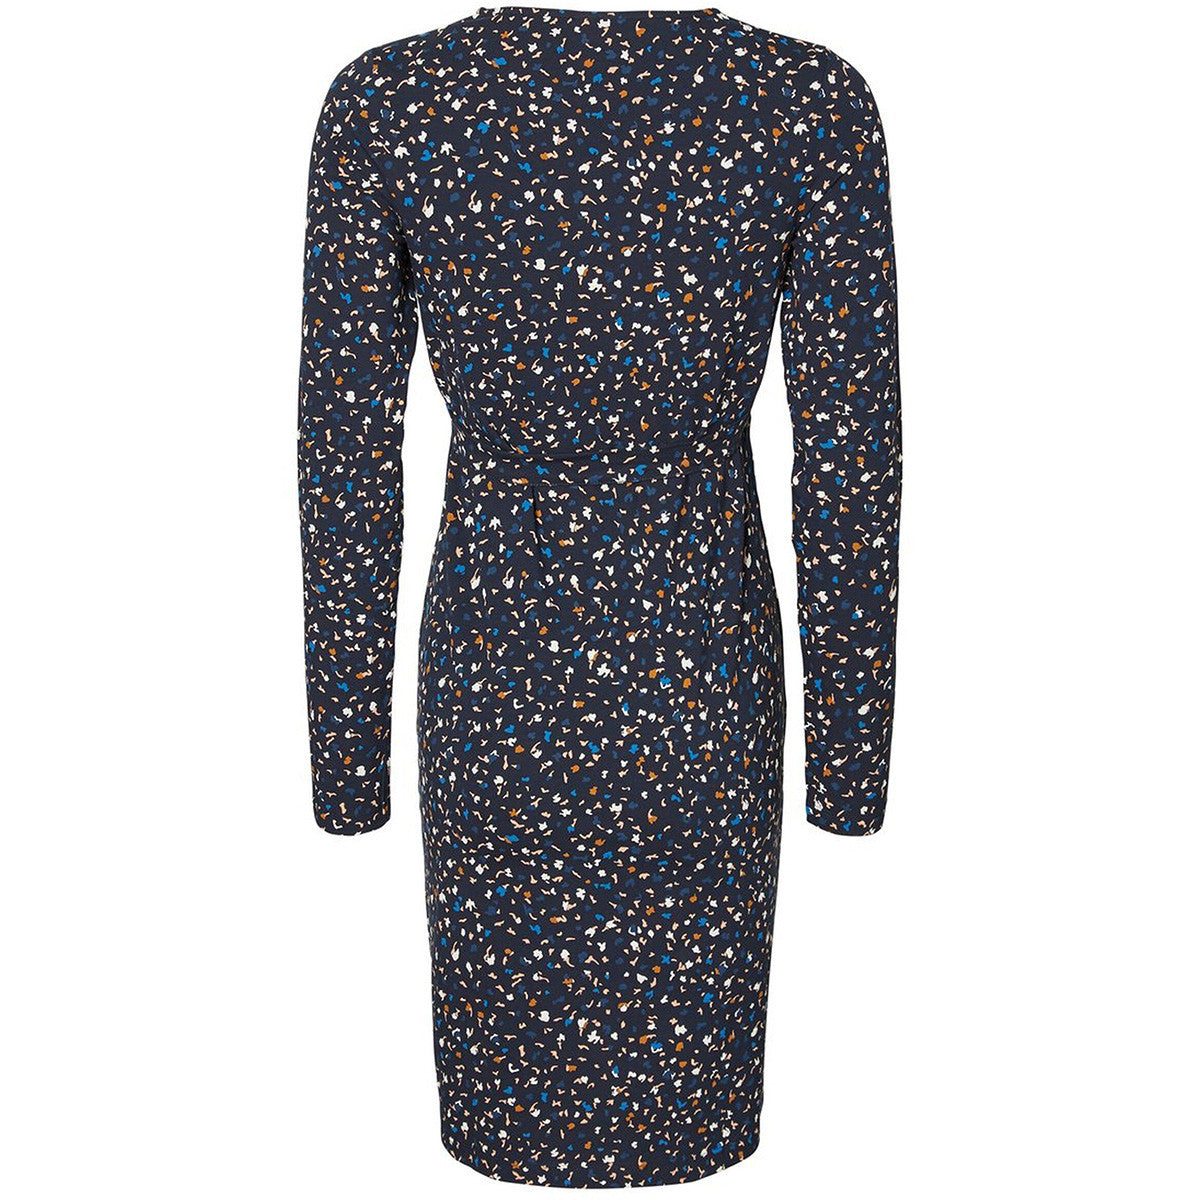 Fashionably pregnant maternity and nursing breastfeeding online boutique pregnancy and breastfeeding clothing specialists. Mamalicious blue long sleeve maternity dress uk free delivery